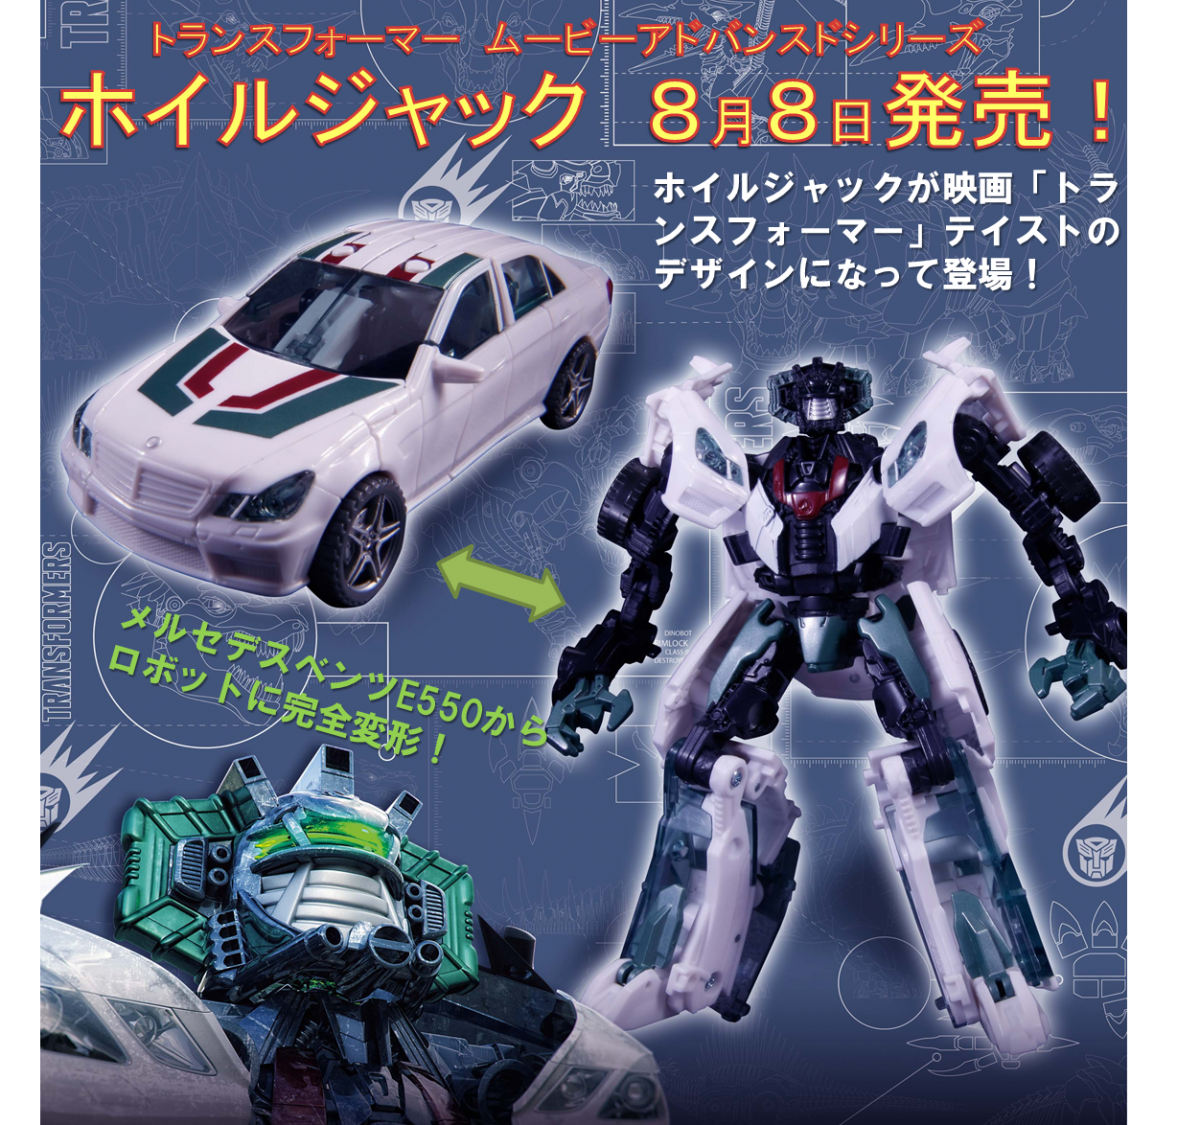 Transformers News: Black Knight Dinobots And Movie Advance EX Wheeljack Webpages With Updated Takara Tomy Info